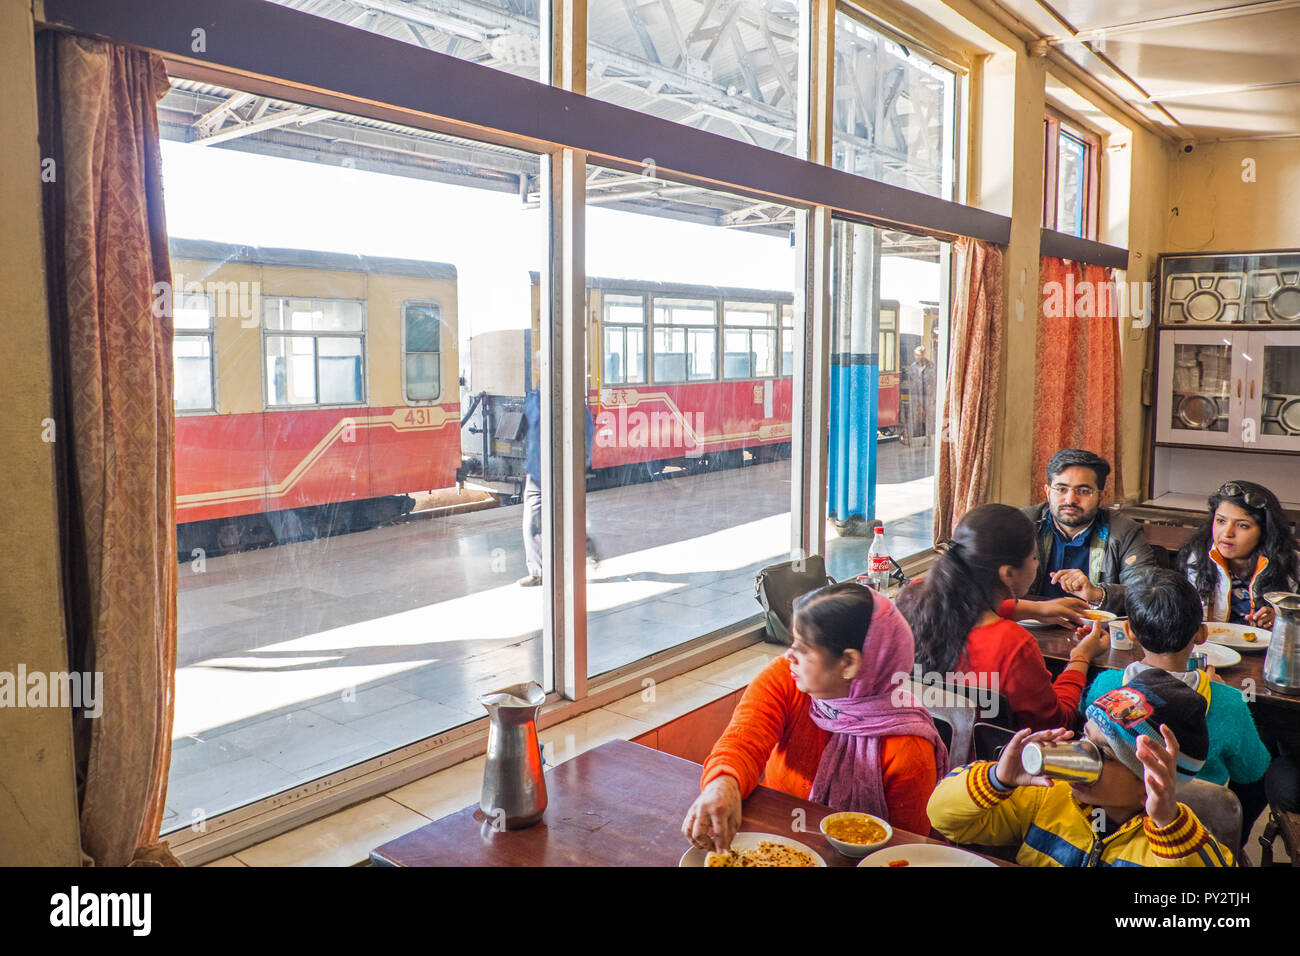 The canteen / cafe at Shimla railway station, India - Stock Image